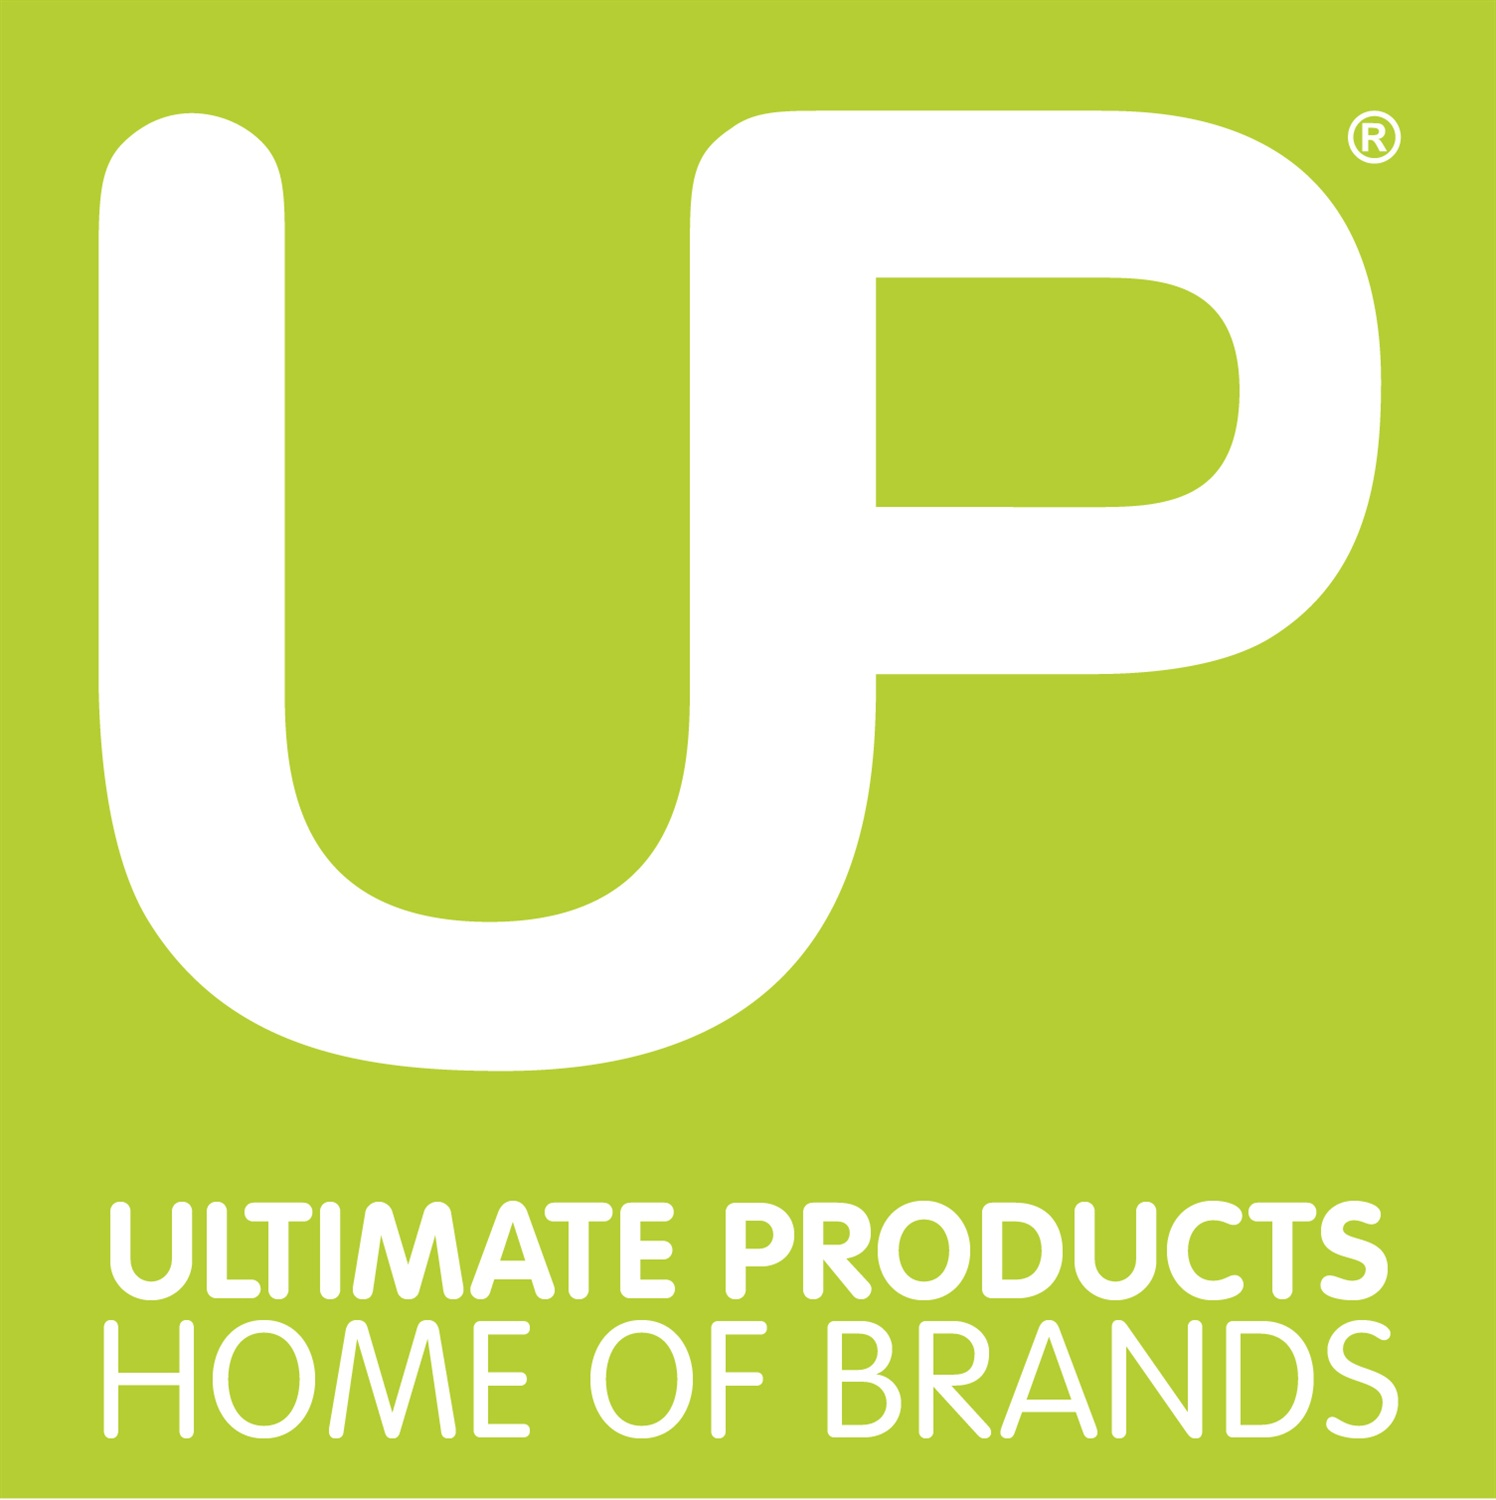 Ultimate Products main logo